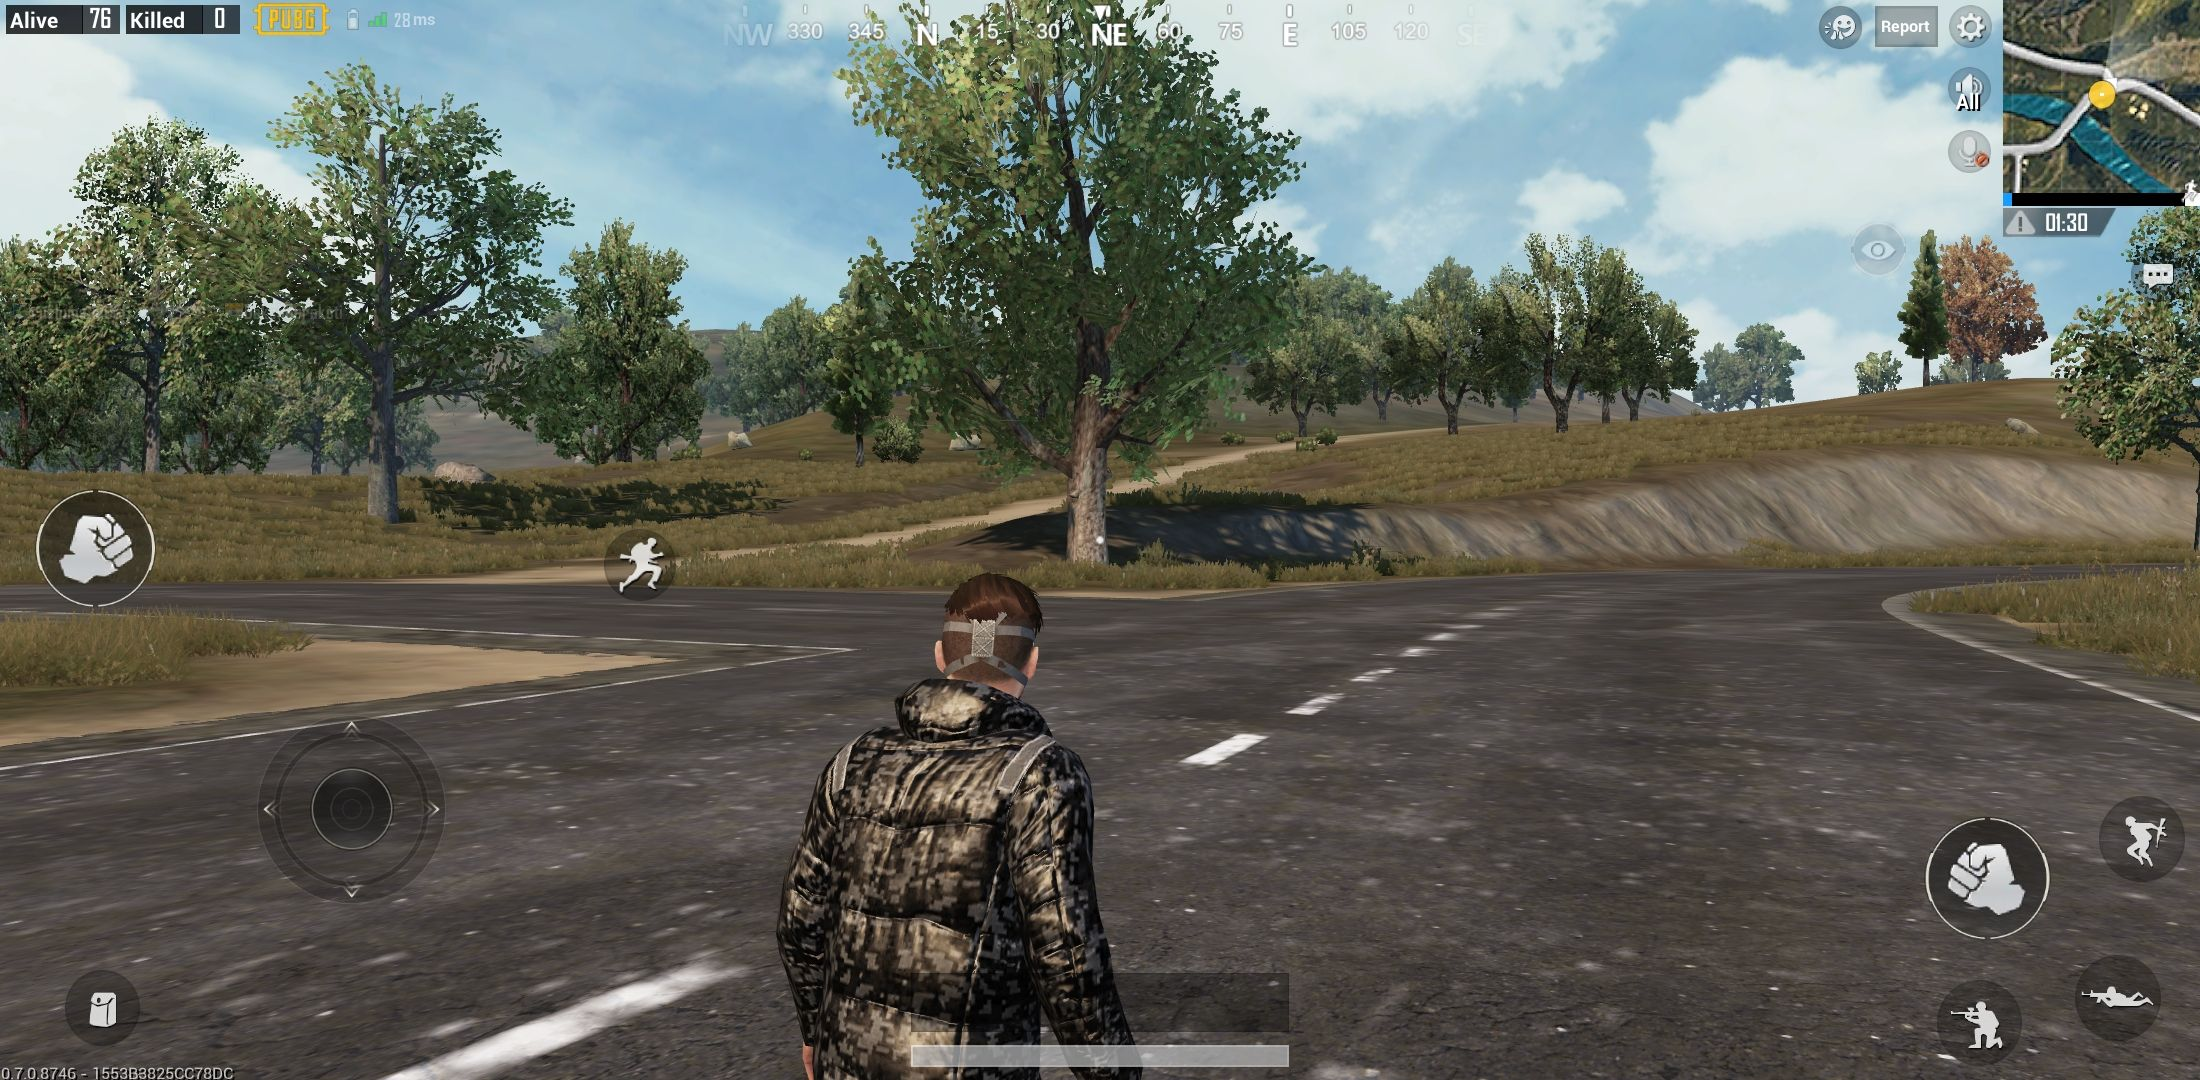 Ultra PUBG Gaming on OnePlus 6 - OnePlus Community